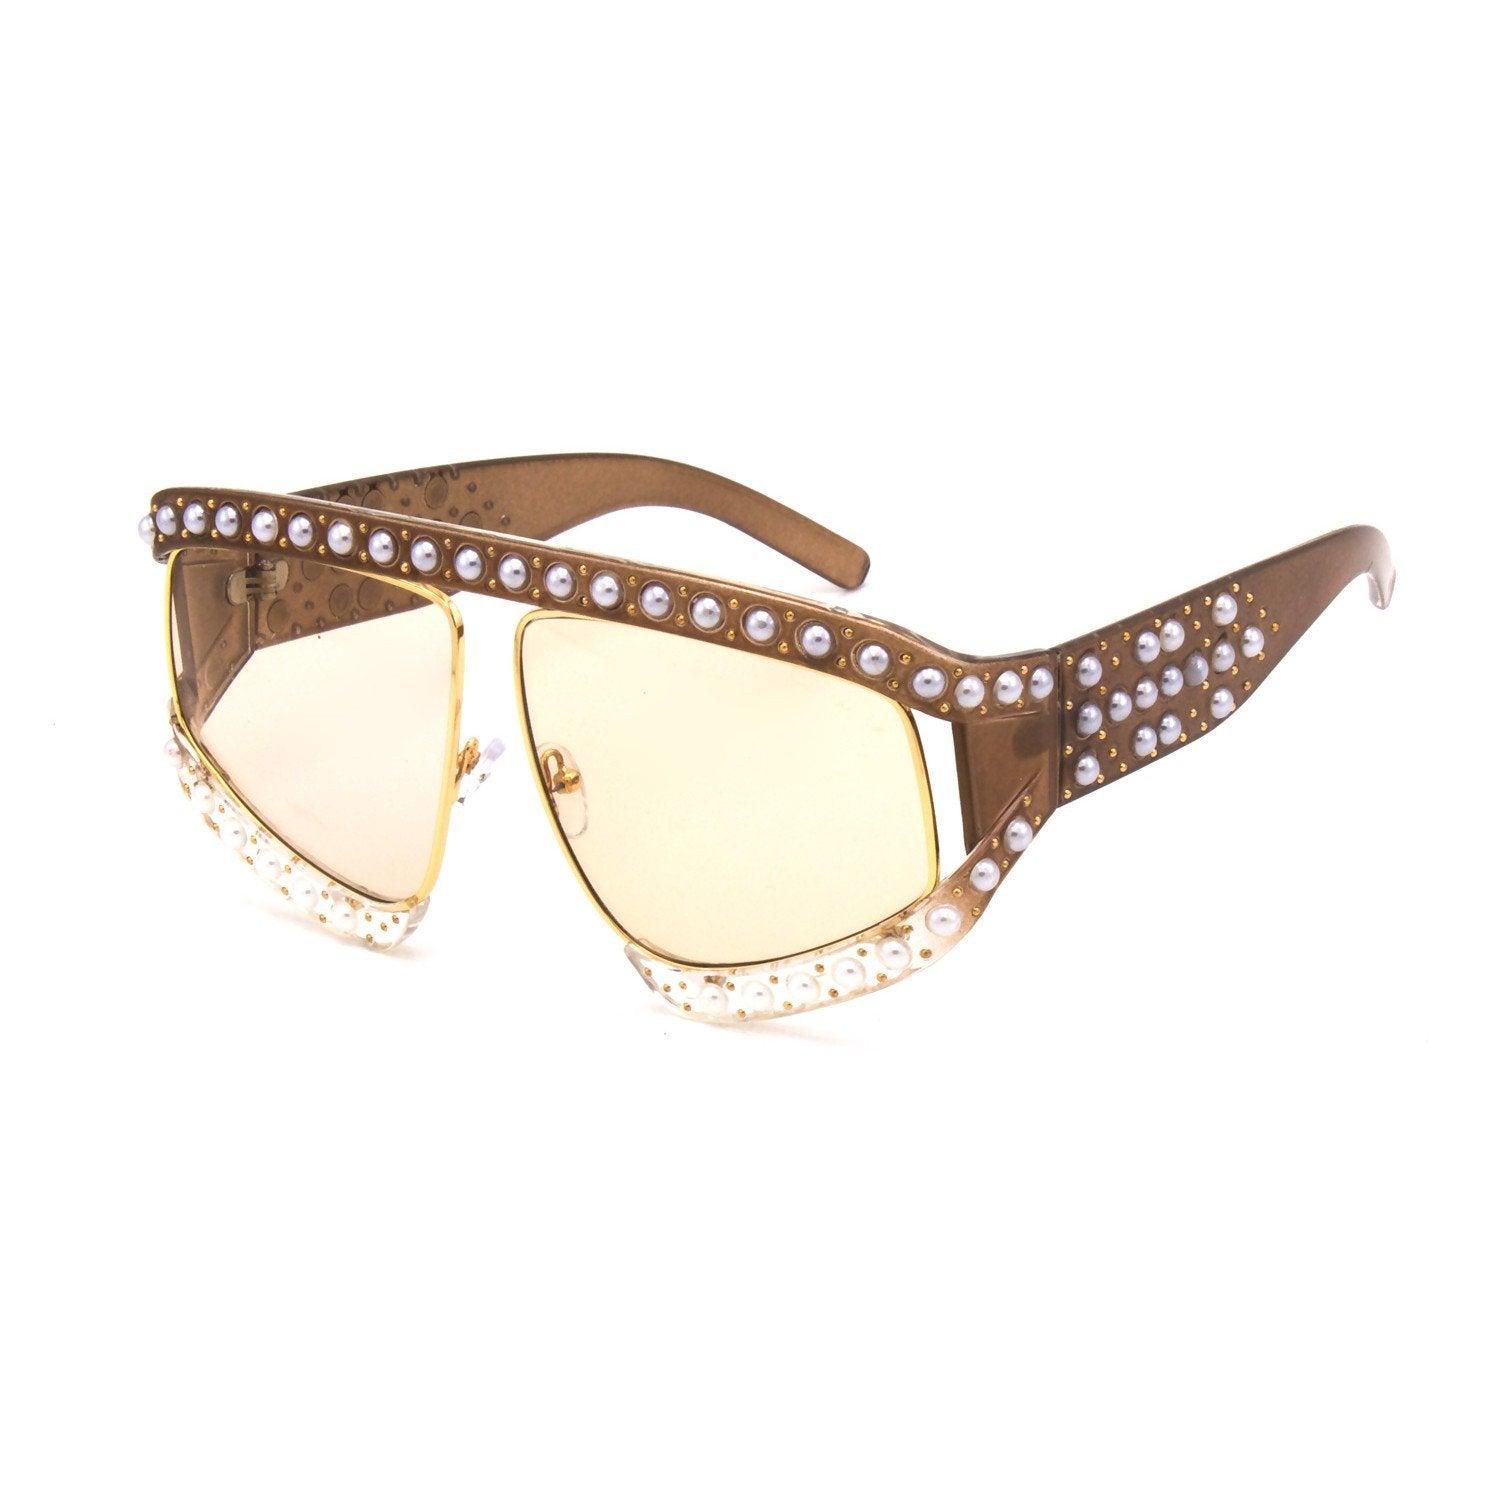 Crystal Sunglasses - Final Sale